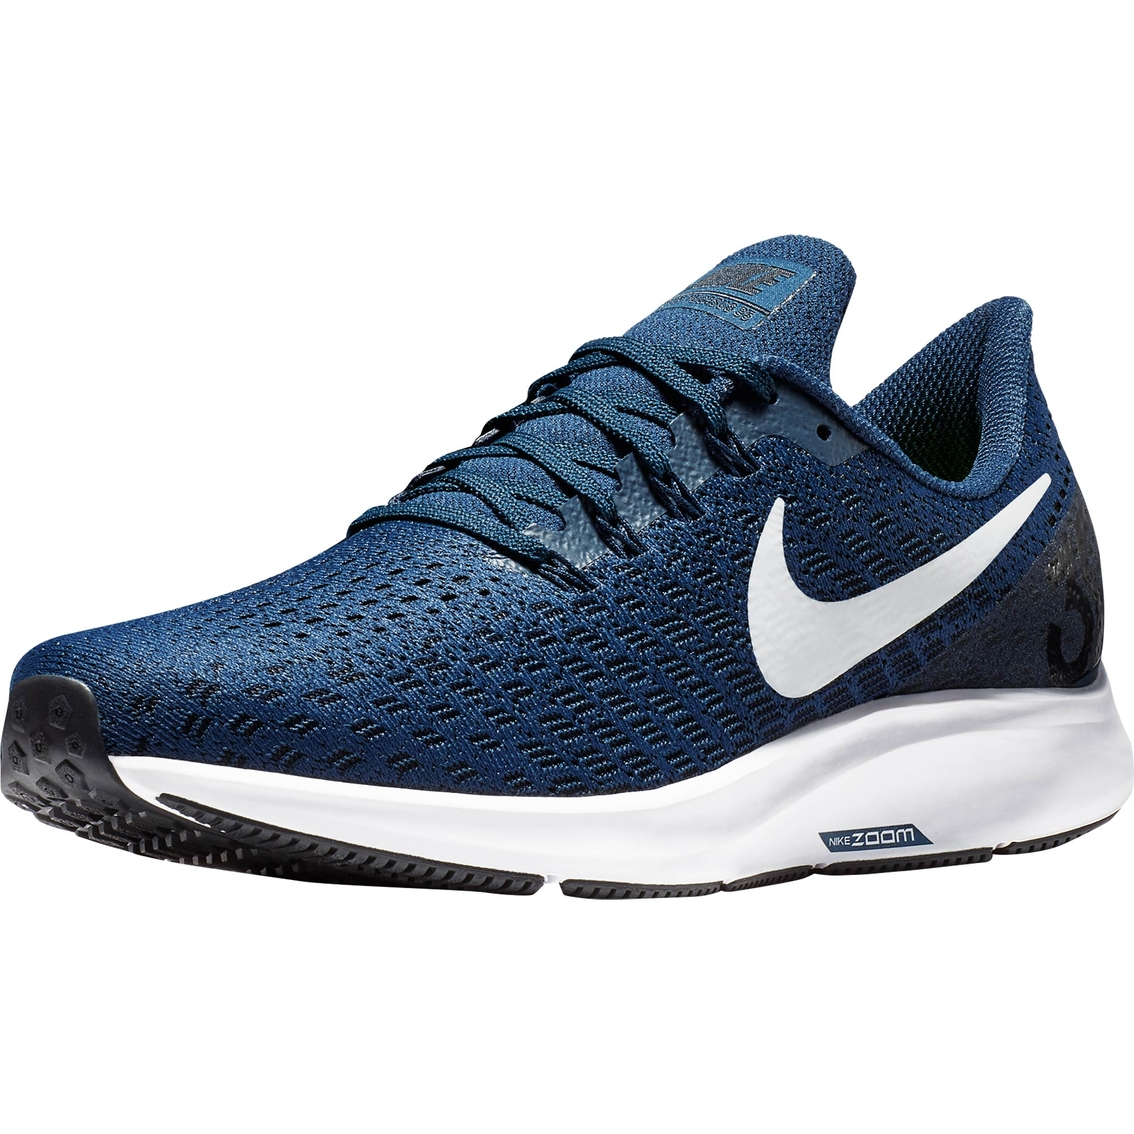 pretty nice 8a404 3edd1 Nike Men's Zoom Pegasus 35 Running Shoes | Men's Athletic ...